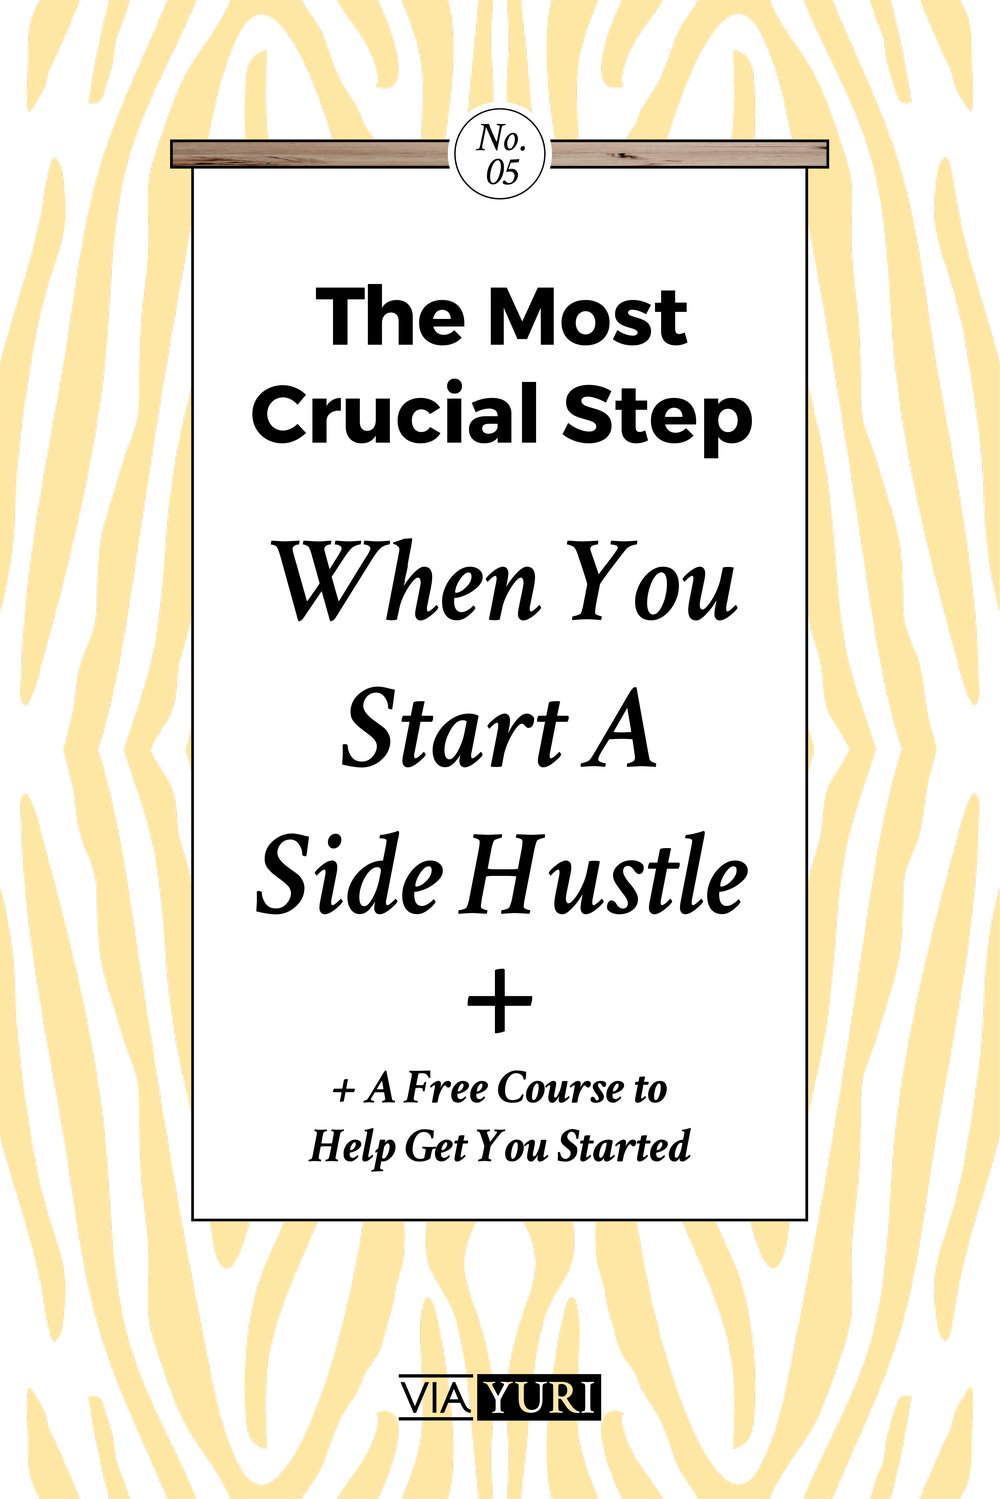 The Most Crucial Step to Starting a Side Hustle - aka - THE thing that makes your hustle a business | see the full post at viaYuri.com